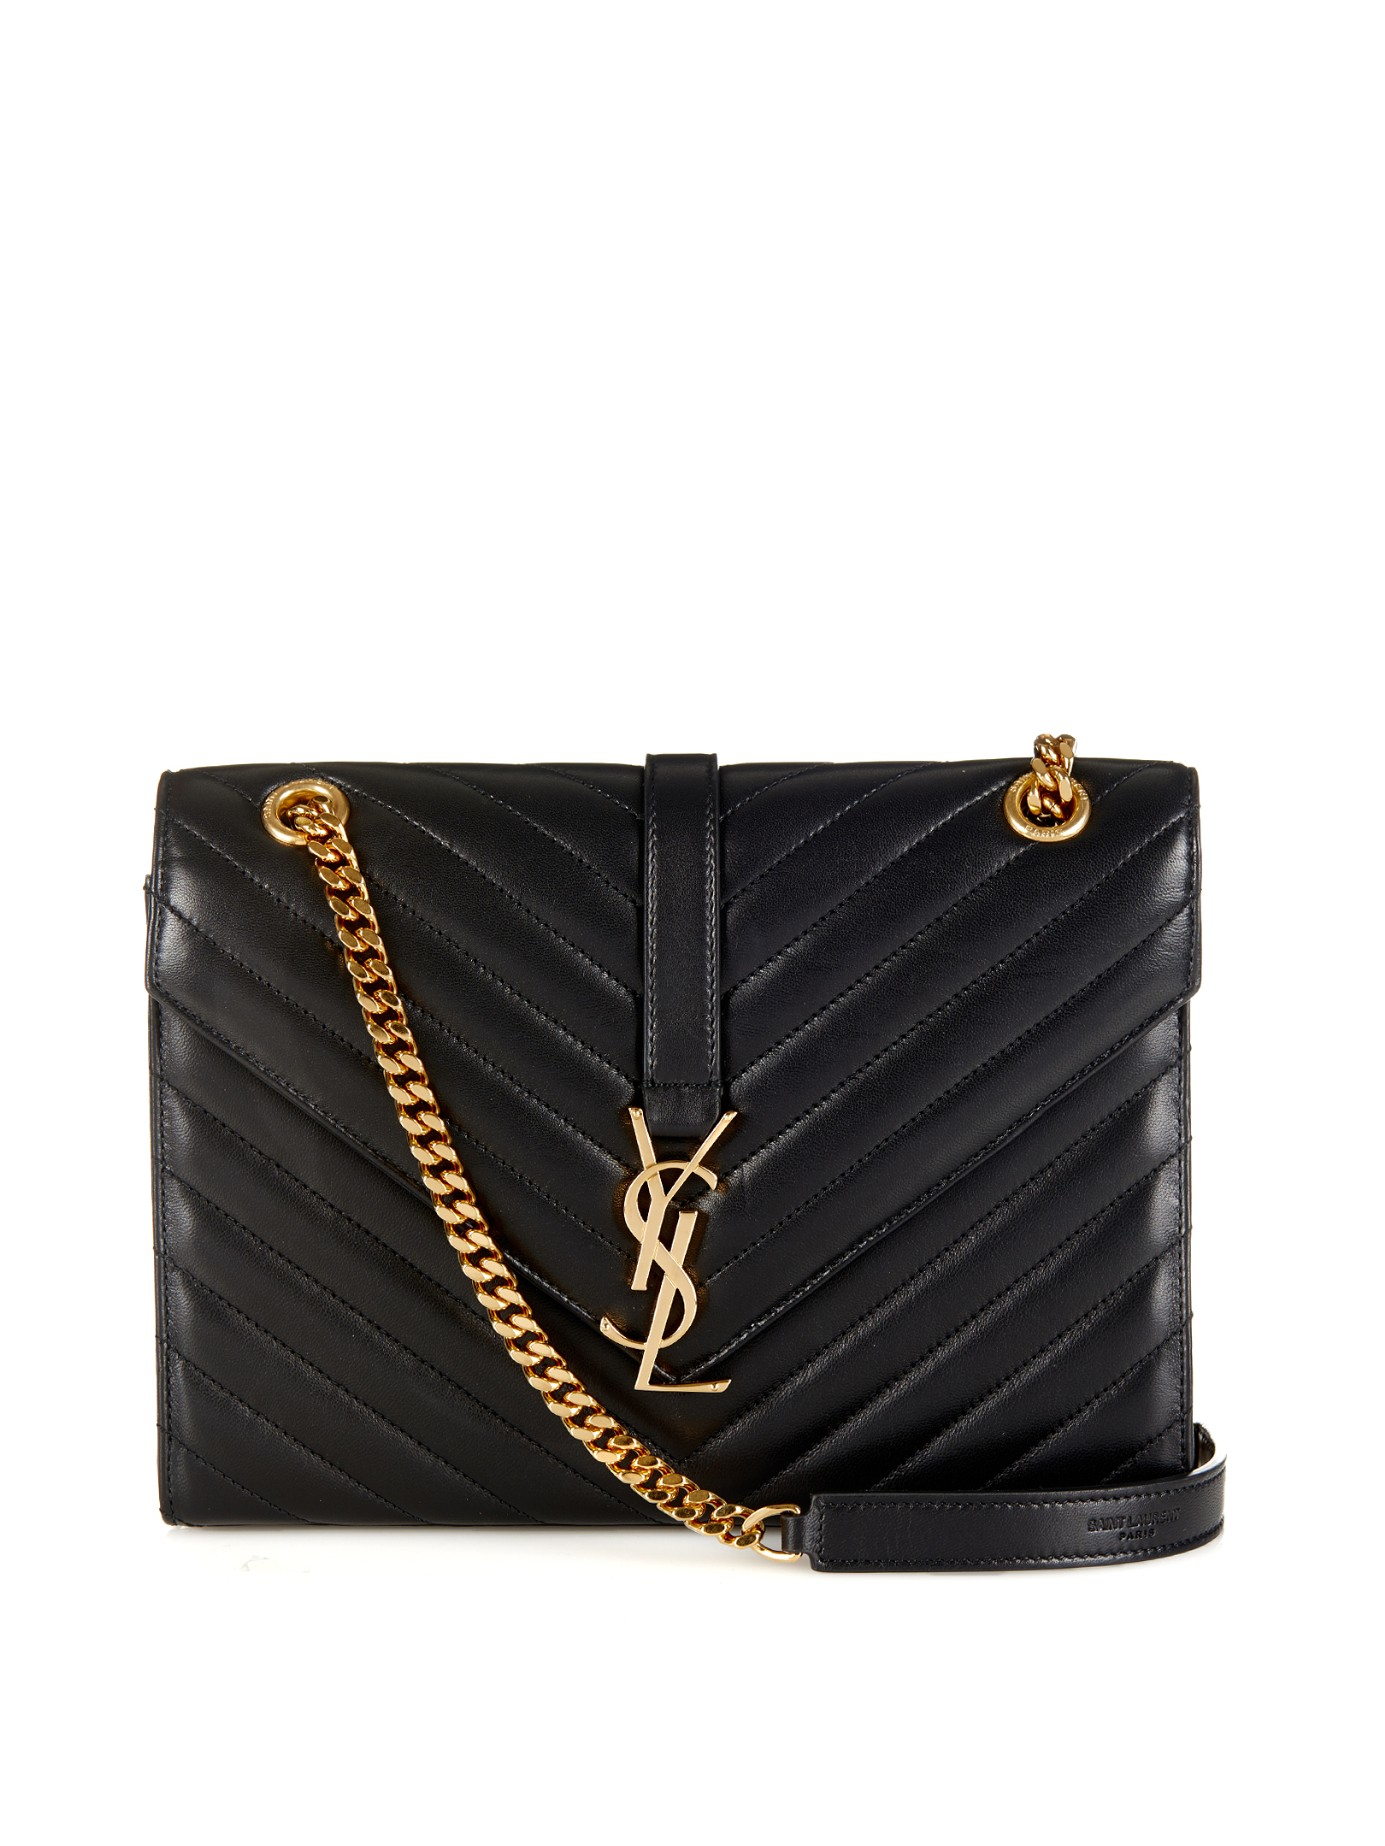 7 Ysl Bags Every Woman Needs And A Look In The Brand S Story